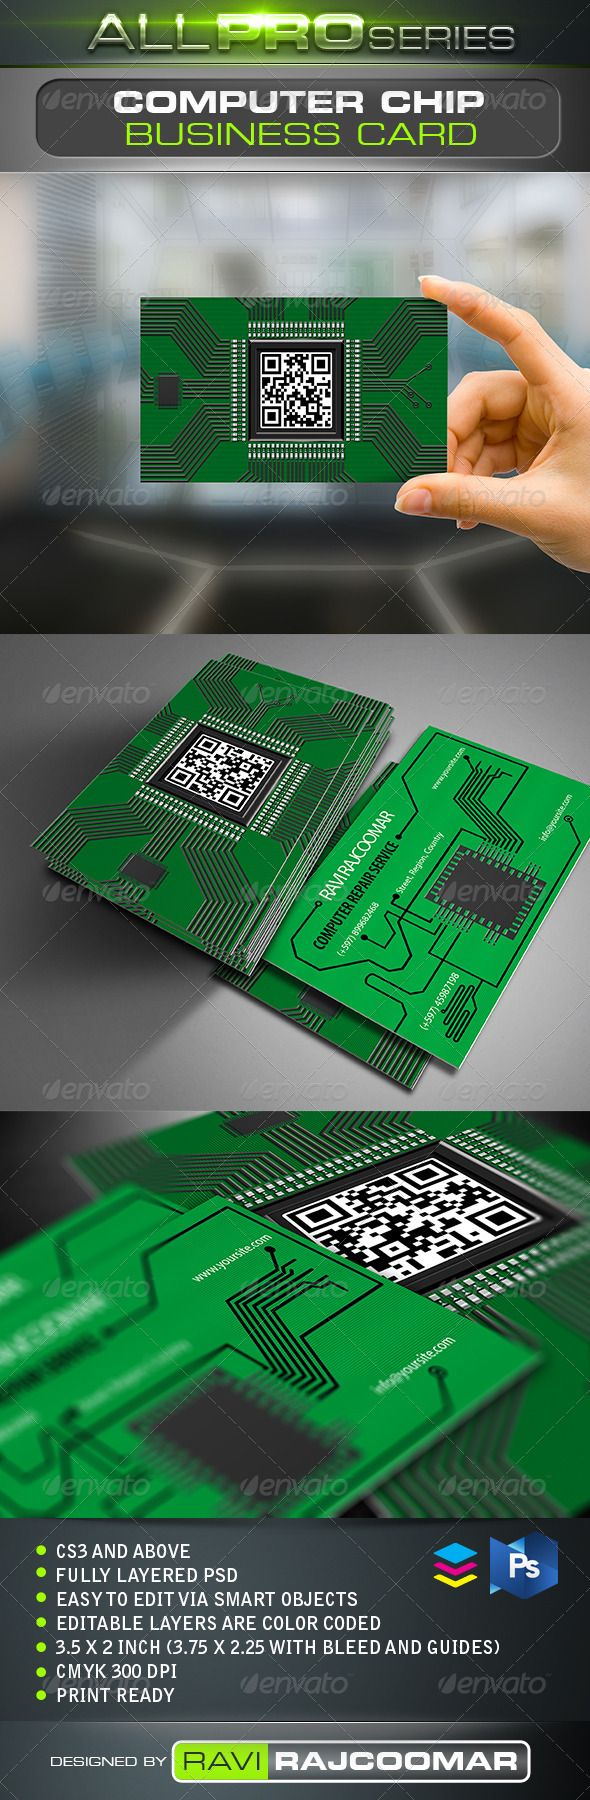 82 best business cards 2018 images on pinterest business cards circuit board business card colourmoves